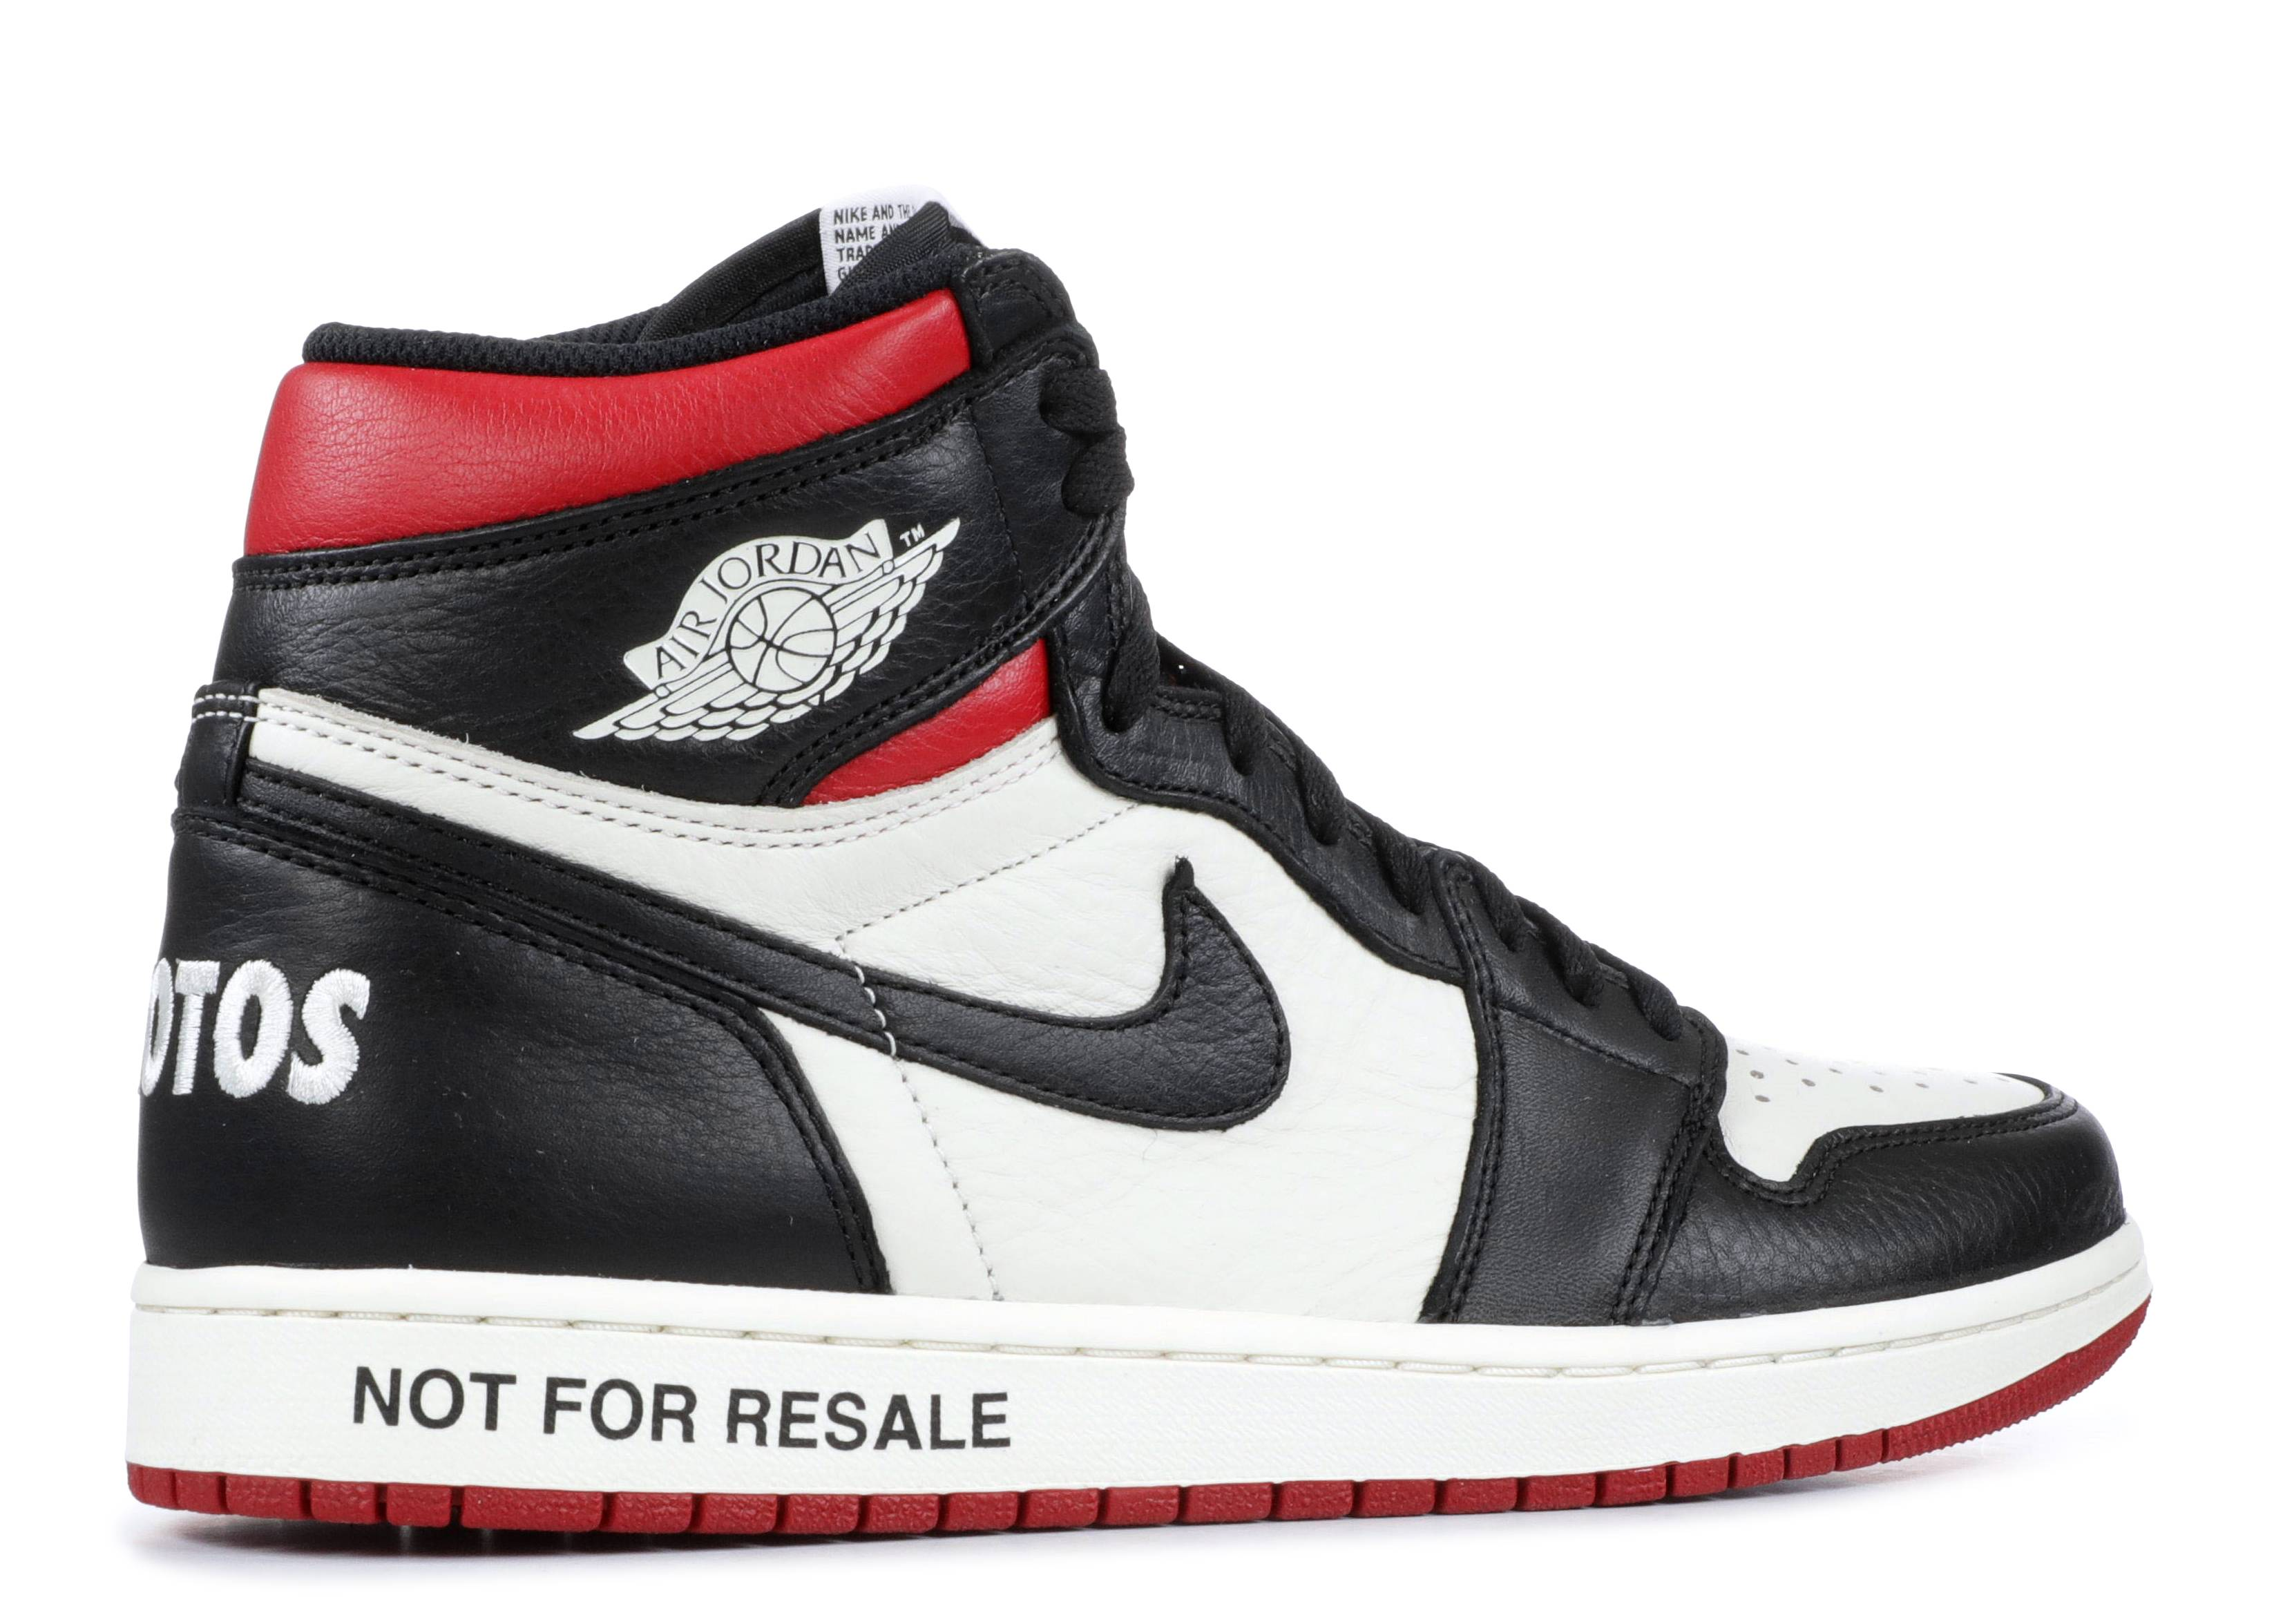 Jordan 1 Not For Resale Red + Yellow Release Info